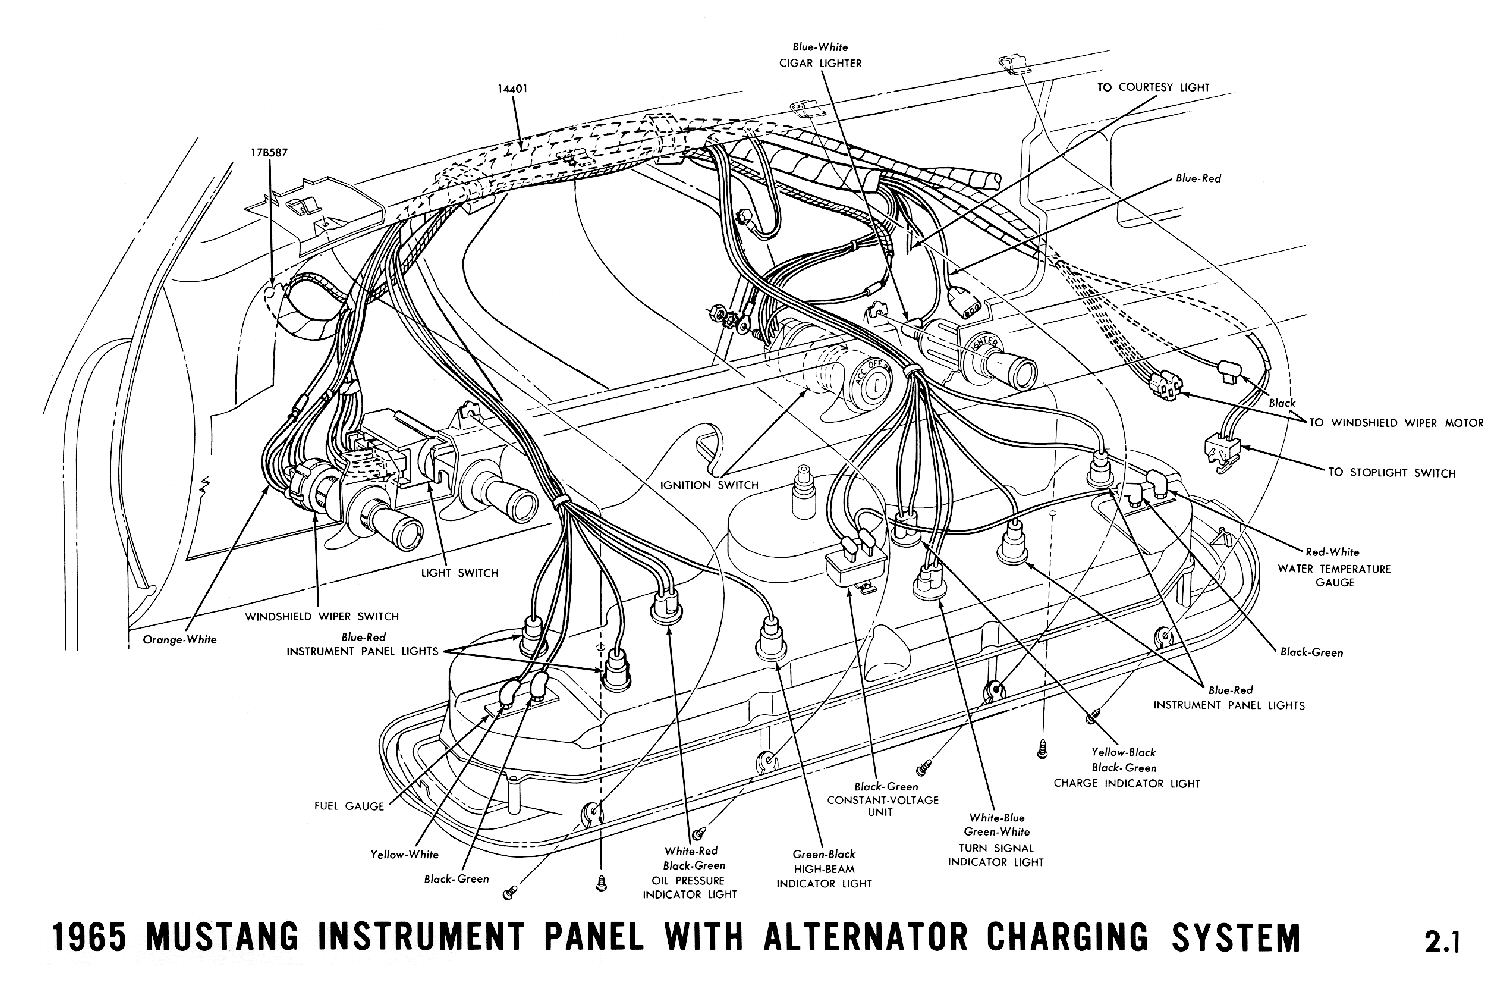 1965 mustang wiring diagrams average joe restoration rh averagejoerestoration com 1966 mustang wiring harness for sale 1966 mustang wiring harness diagram